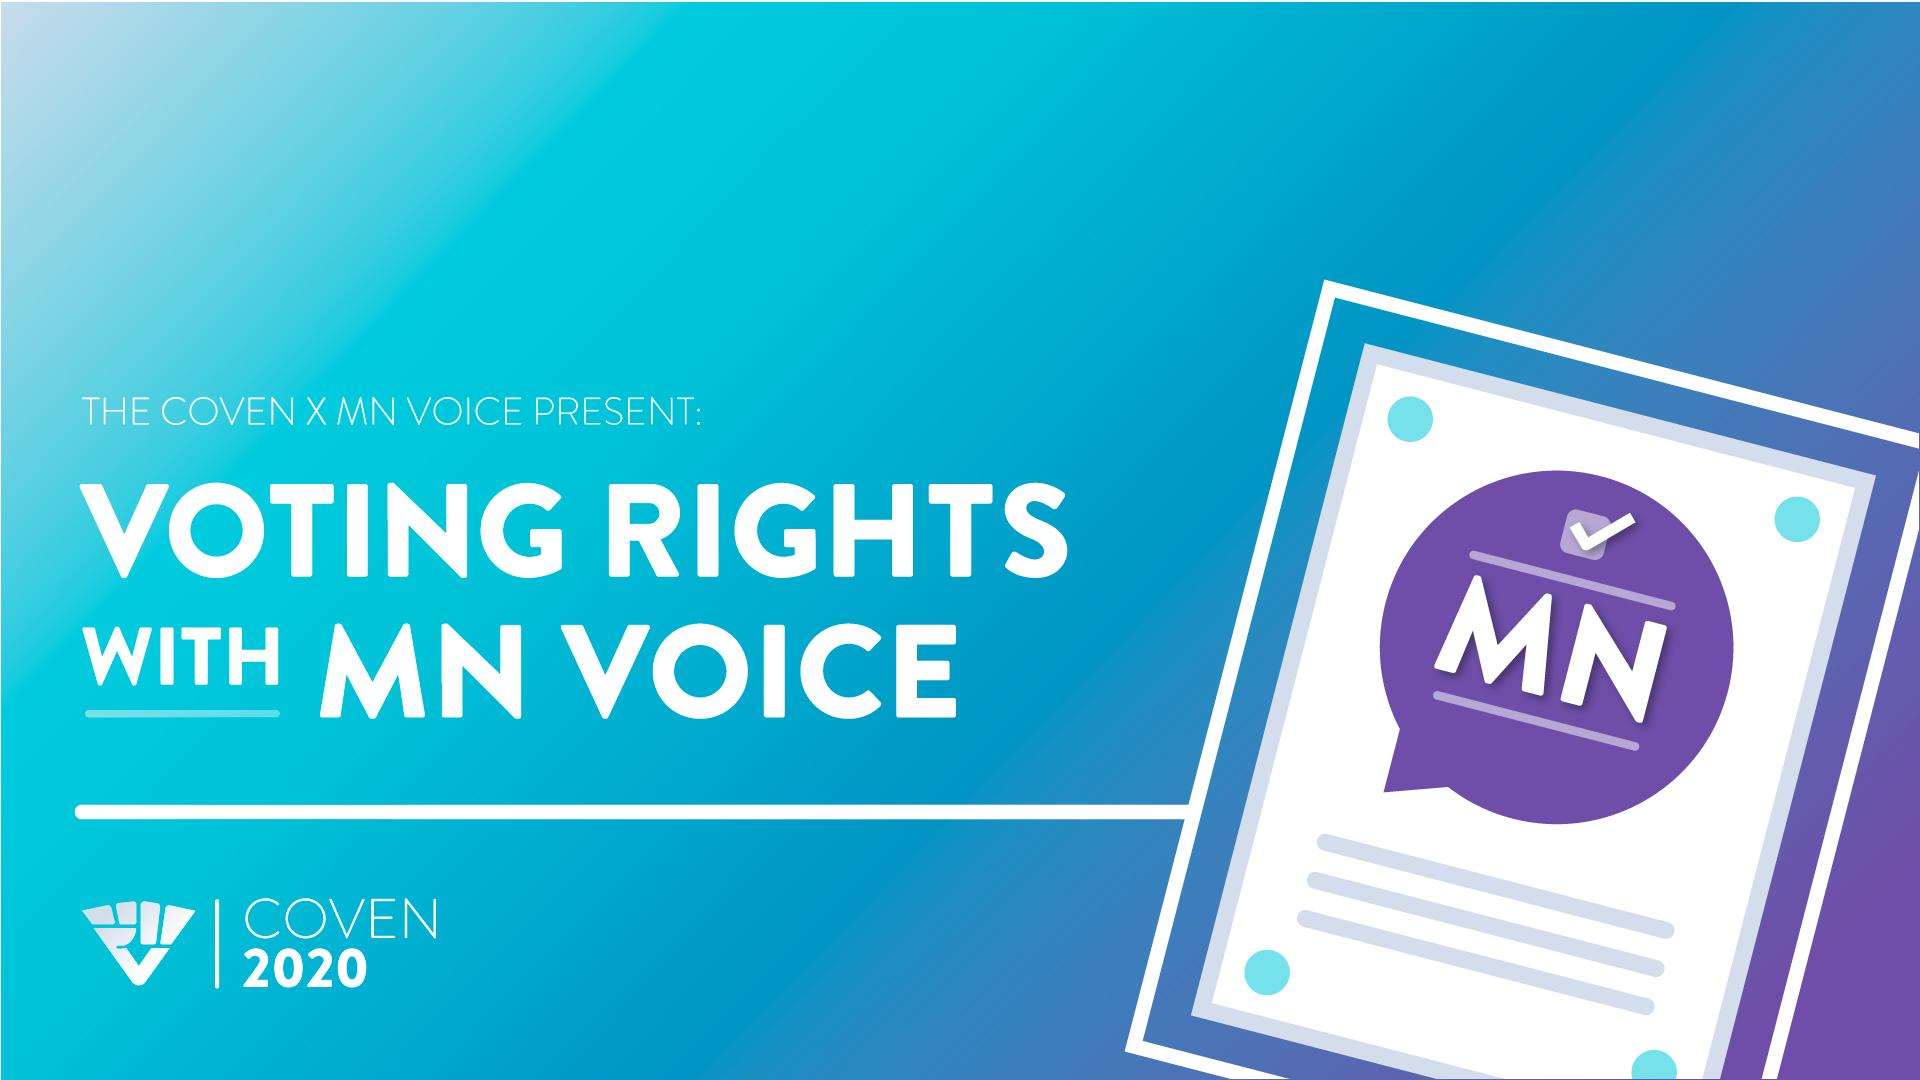 Coven2020 Presents: Voting Rights with MN Voice (Minneapolis)